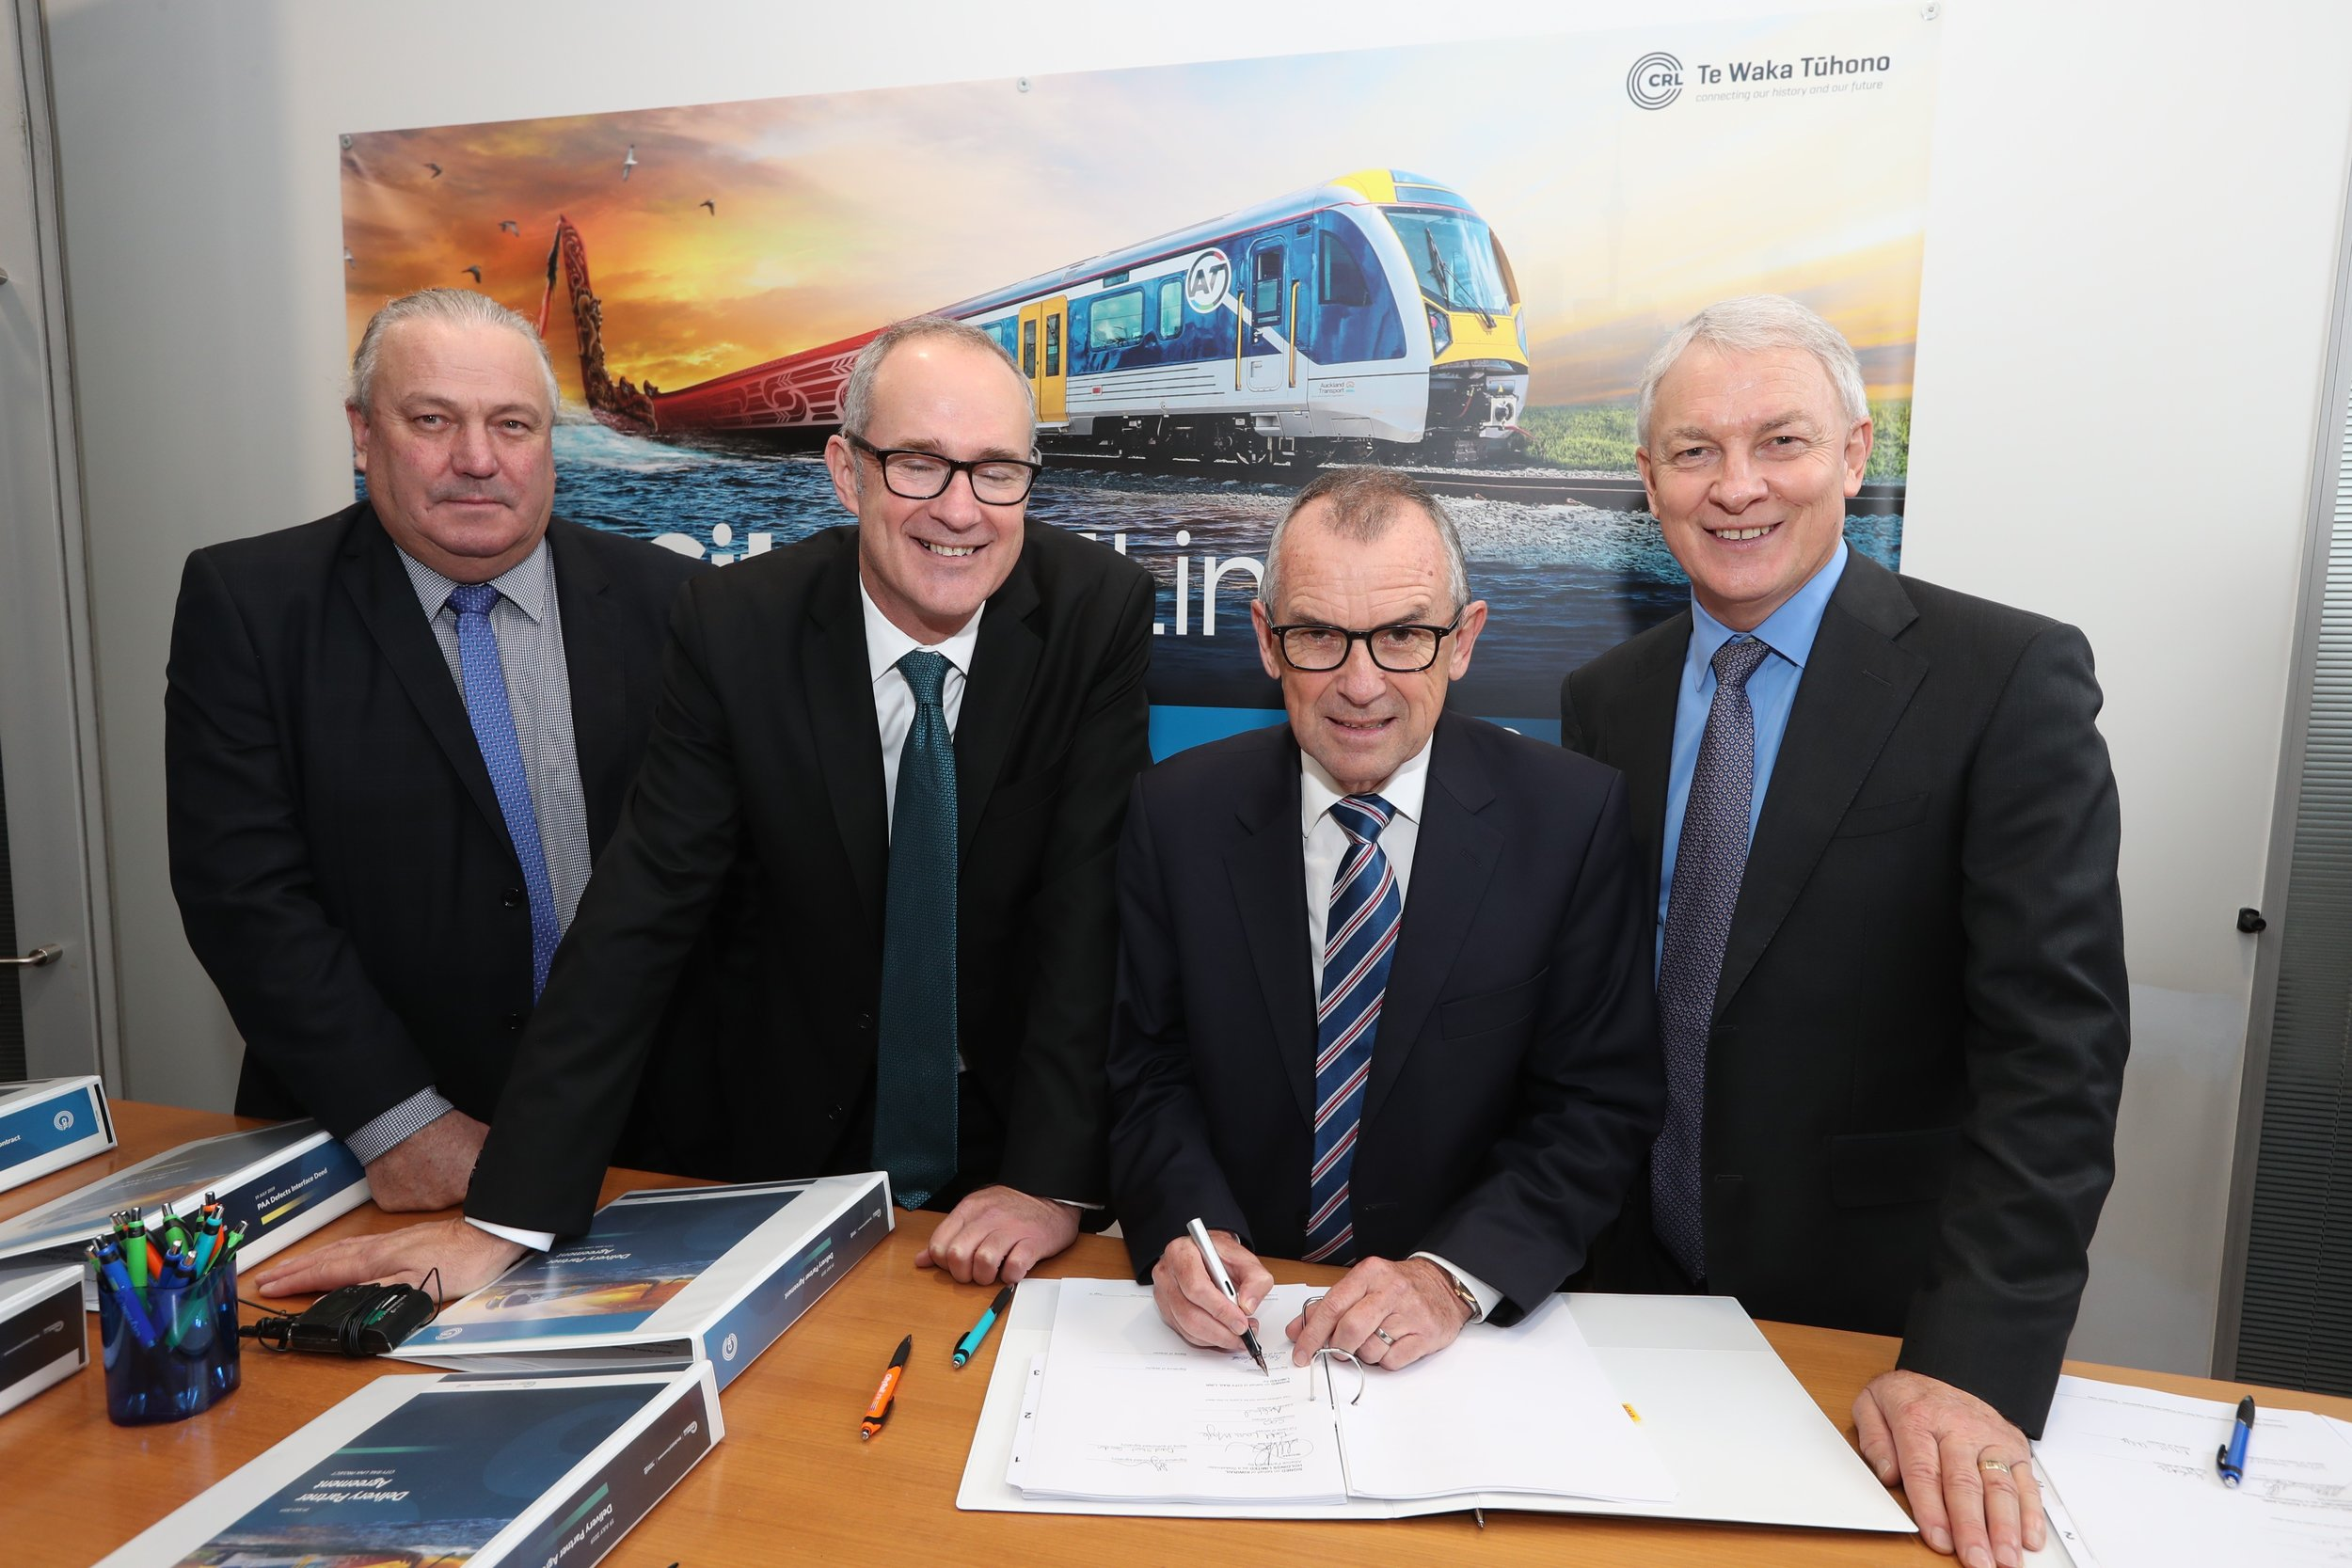 From left to right -Auckland deputy Mayor Bill Cashmore, Transport Minister Phil Twyford, CRLL Chair Sir Brian Roche, Auckland Mayor Phil Goff